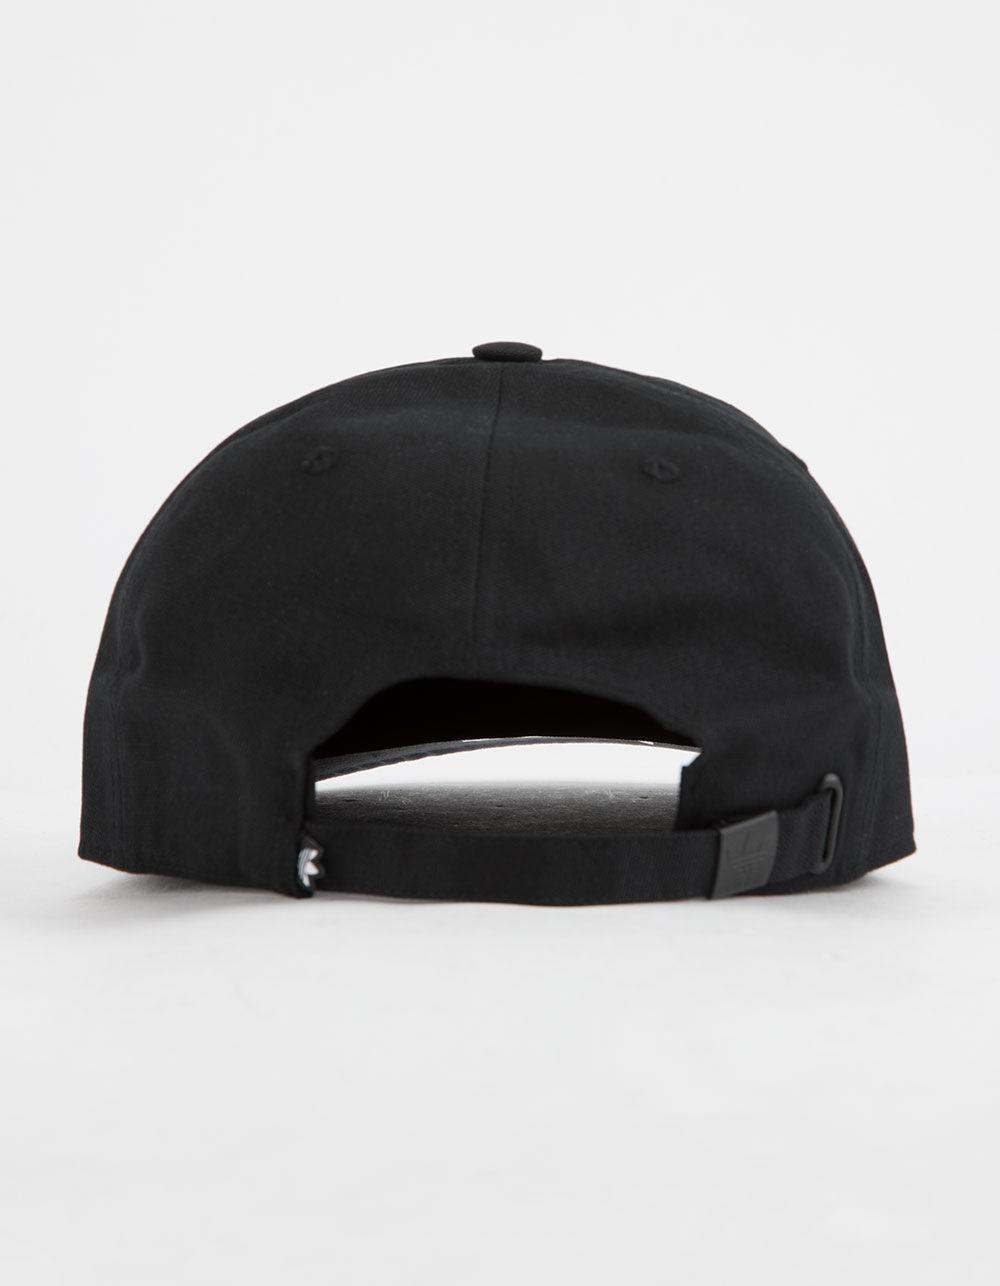 87796d7c481 Lyst - adidas Originals Relaxed Base Black Strapback Hat in Black ...